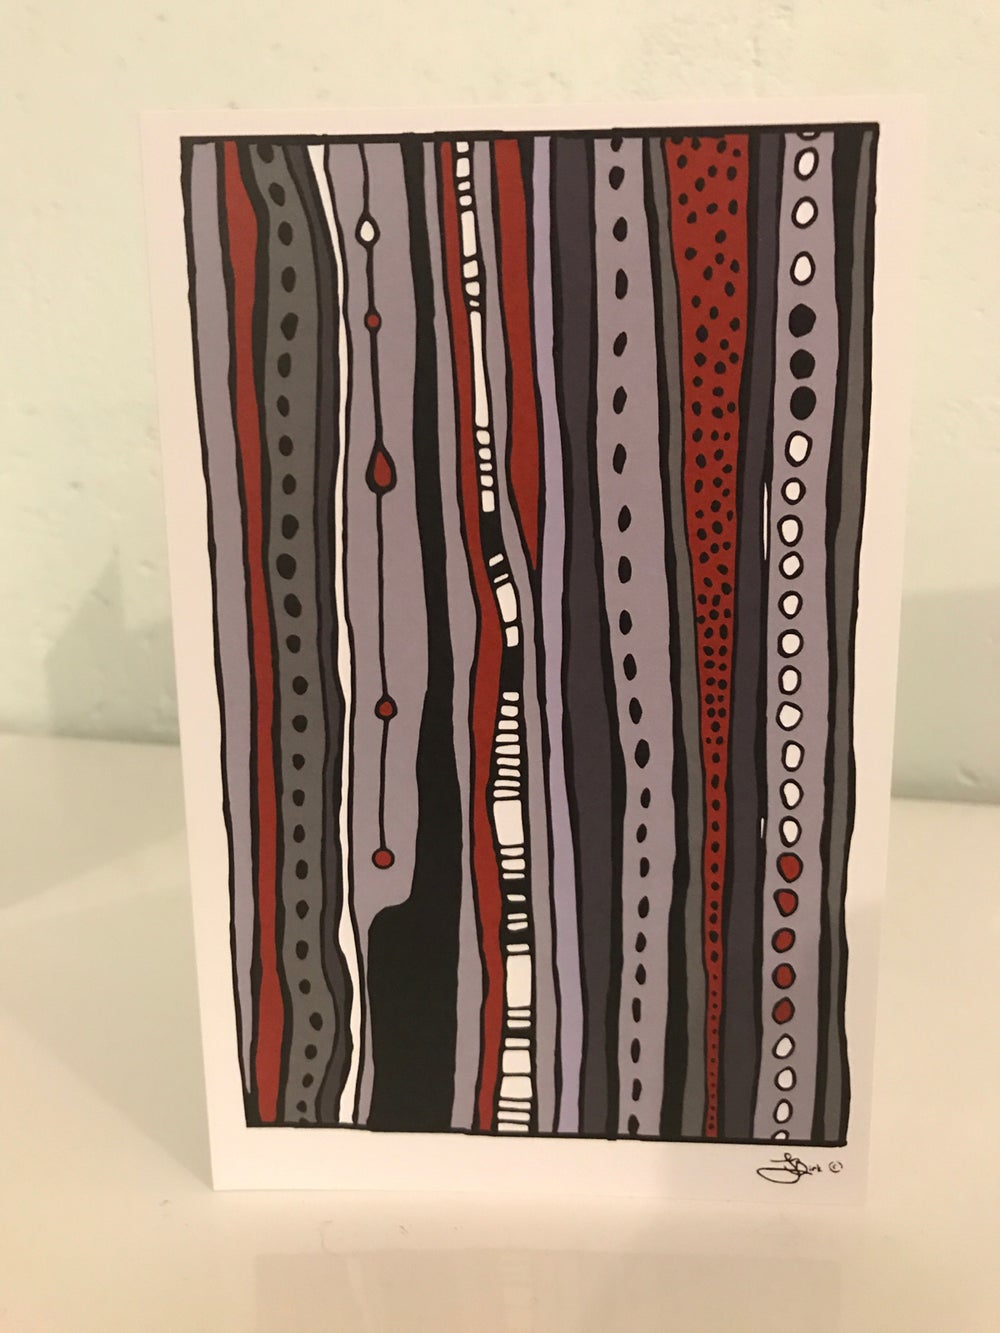 4 pack of Linear Art Cards, artwork by Jessica Birk